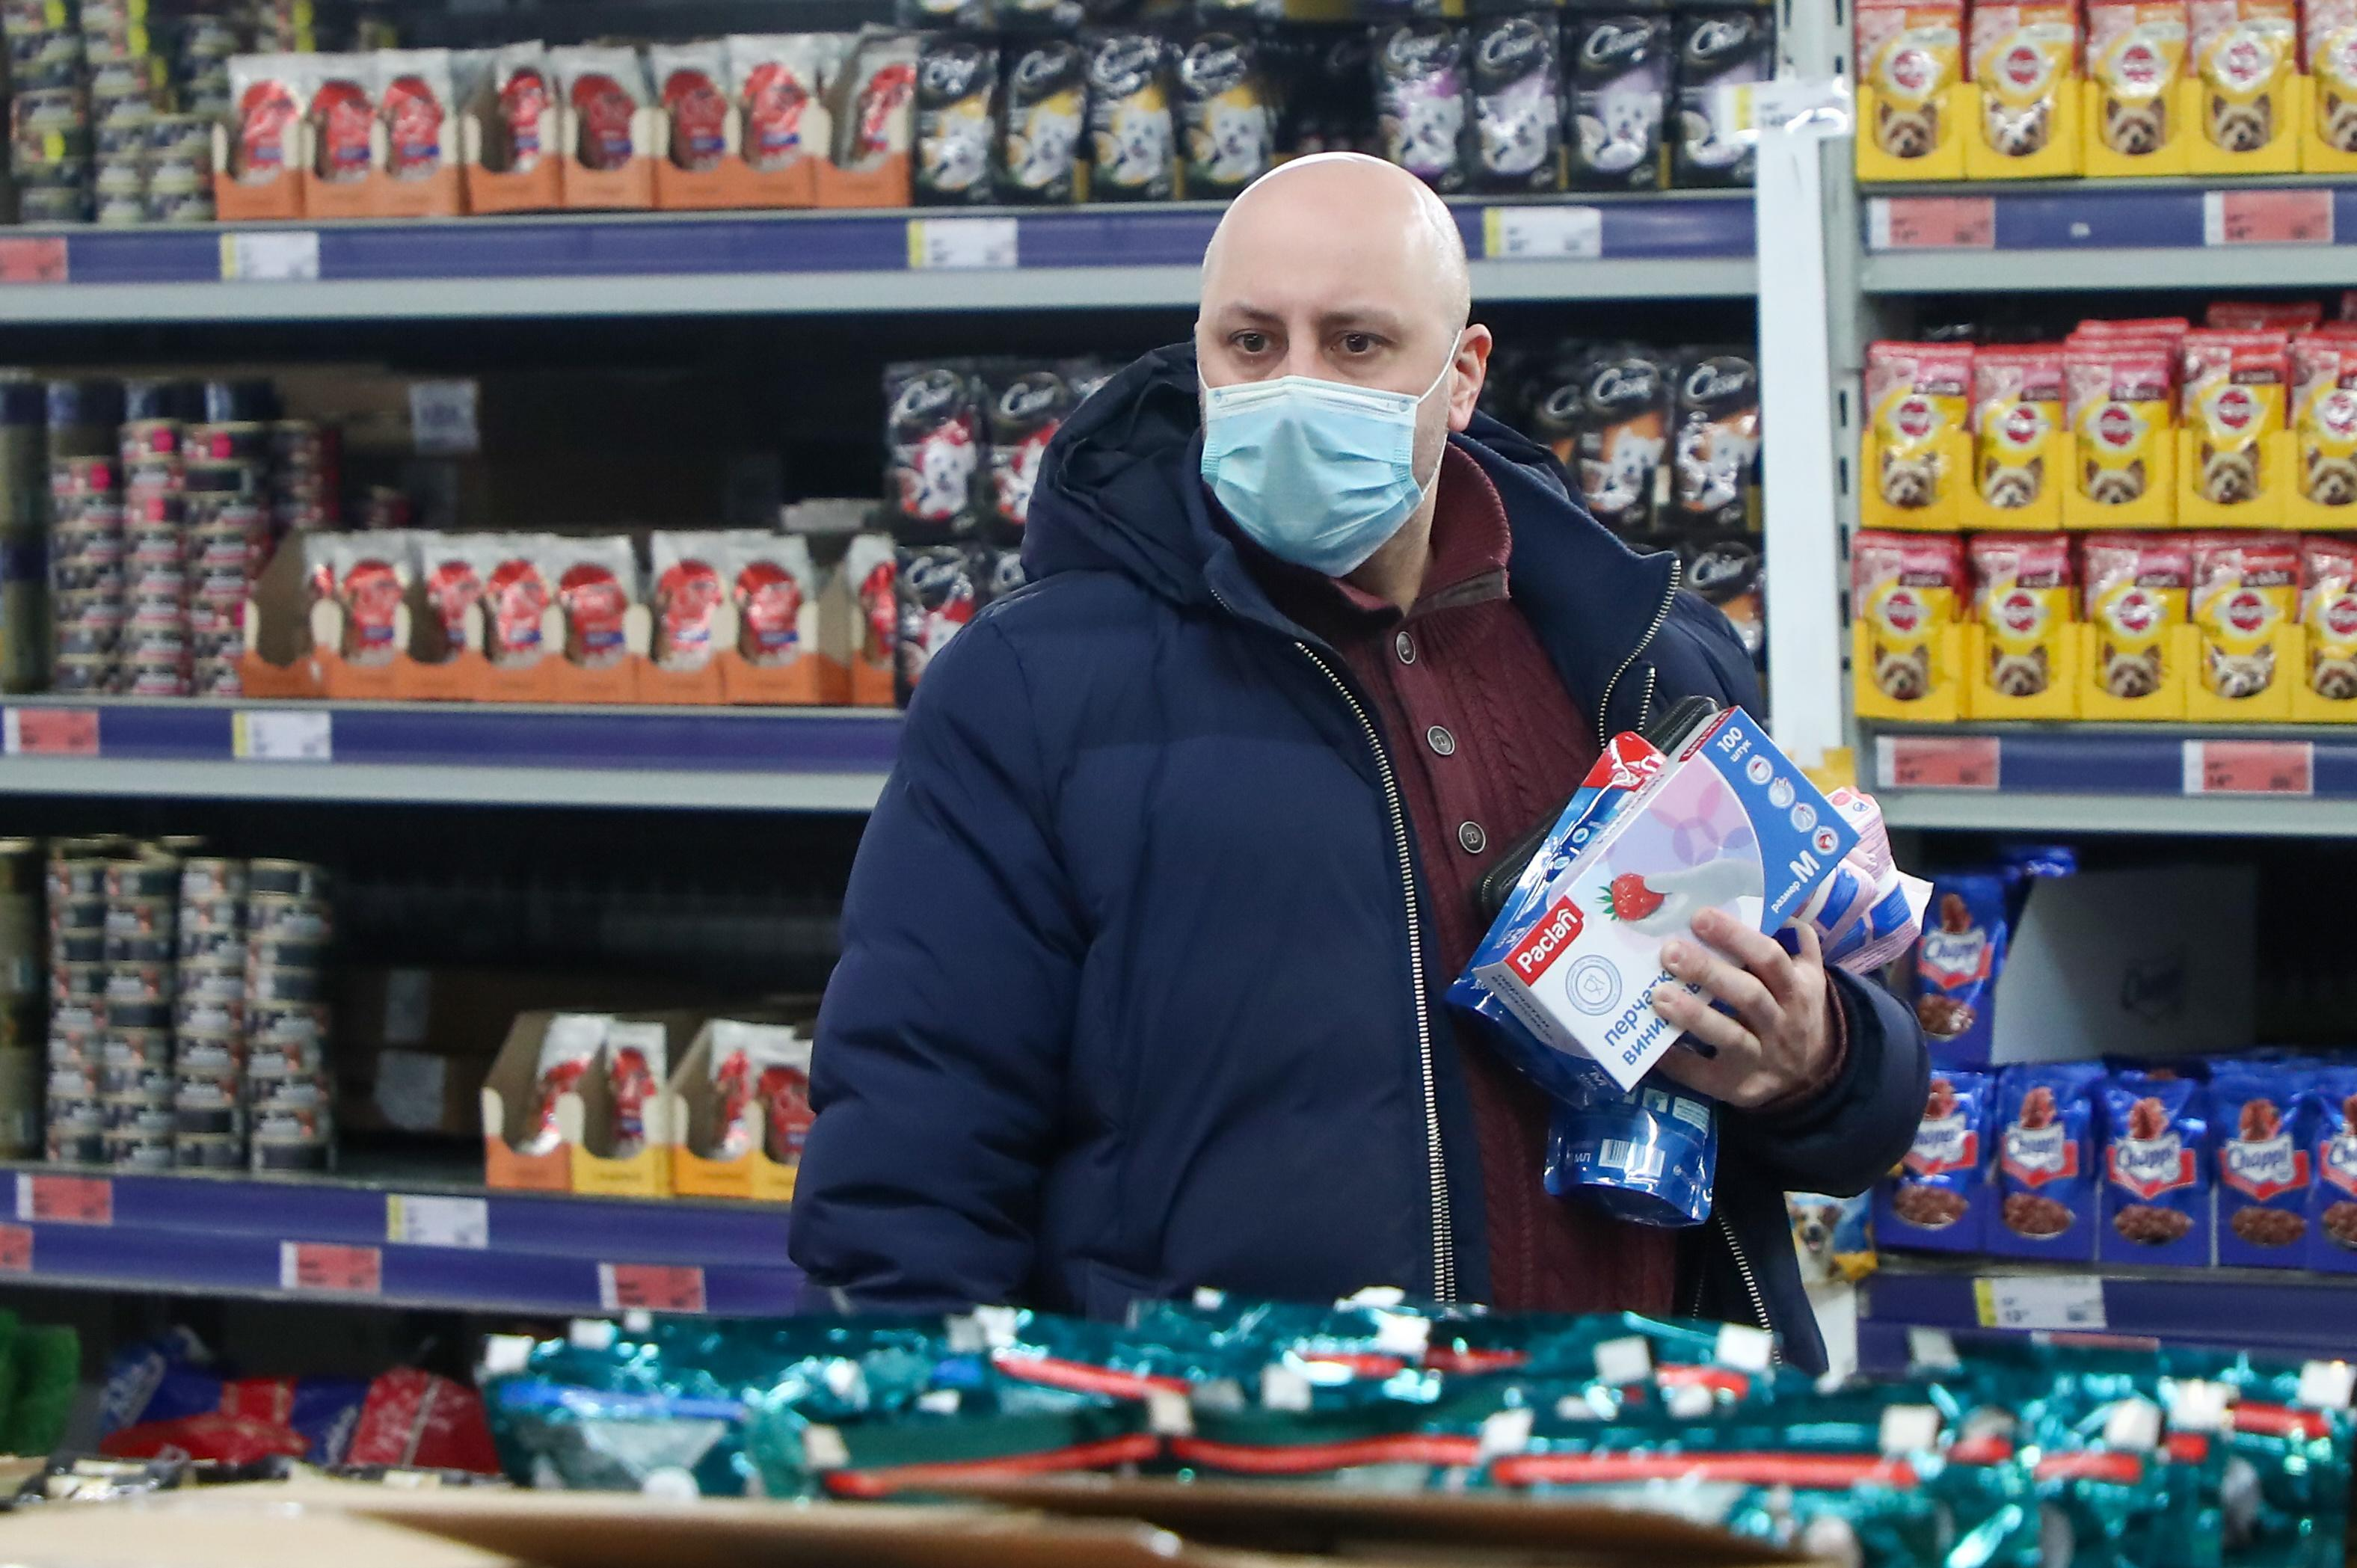 MOSCOW, RUSSIA - MARCH 26, 2020: A customer in a face mask shopping in a Metro Cash and Carry store. Many shopping malls have implemented measures to reduce crowding amid the ongoing COVID-19 coronavirus pandemic. Anton Novoderezhkin/TASS (Photo by Anton Novoderezhkin\TASS via Getty Images)